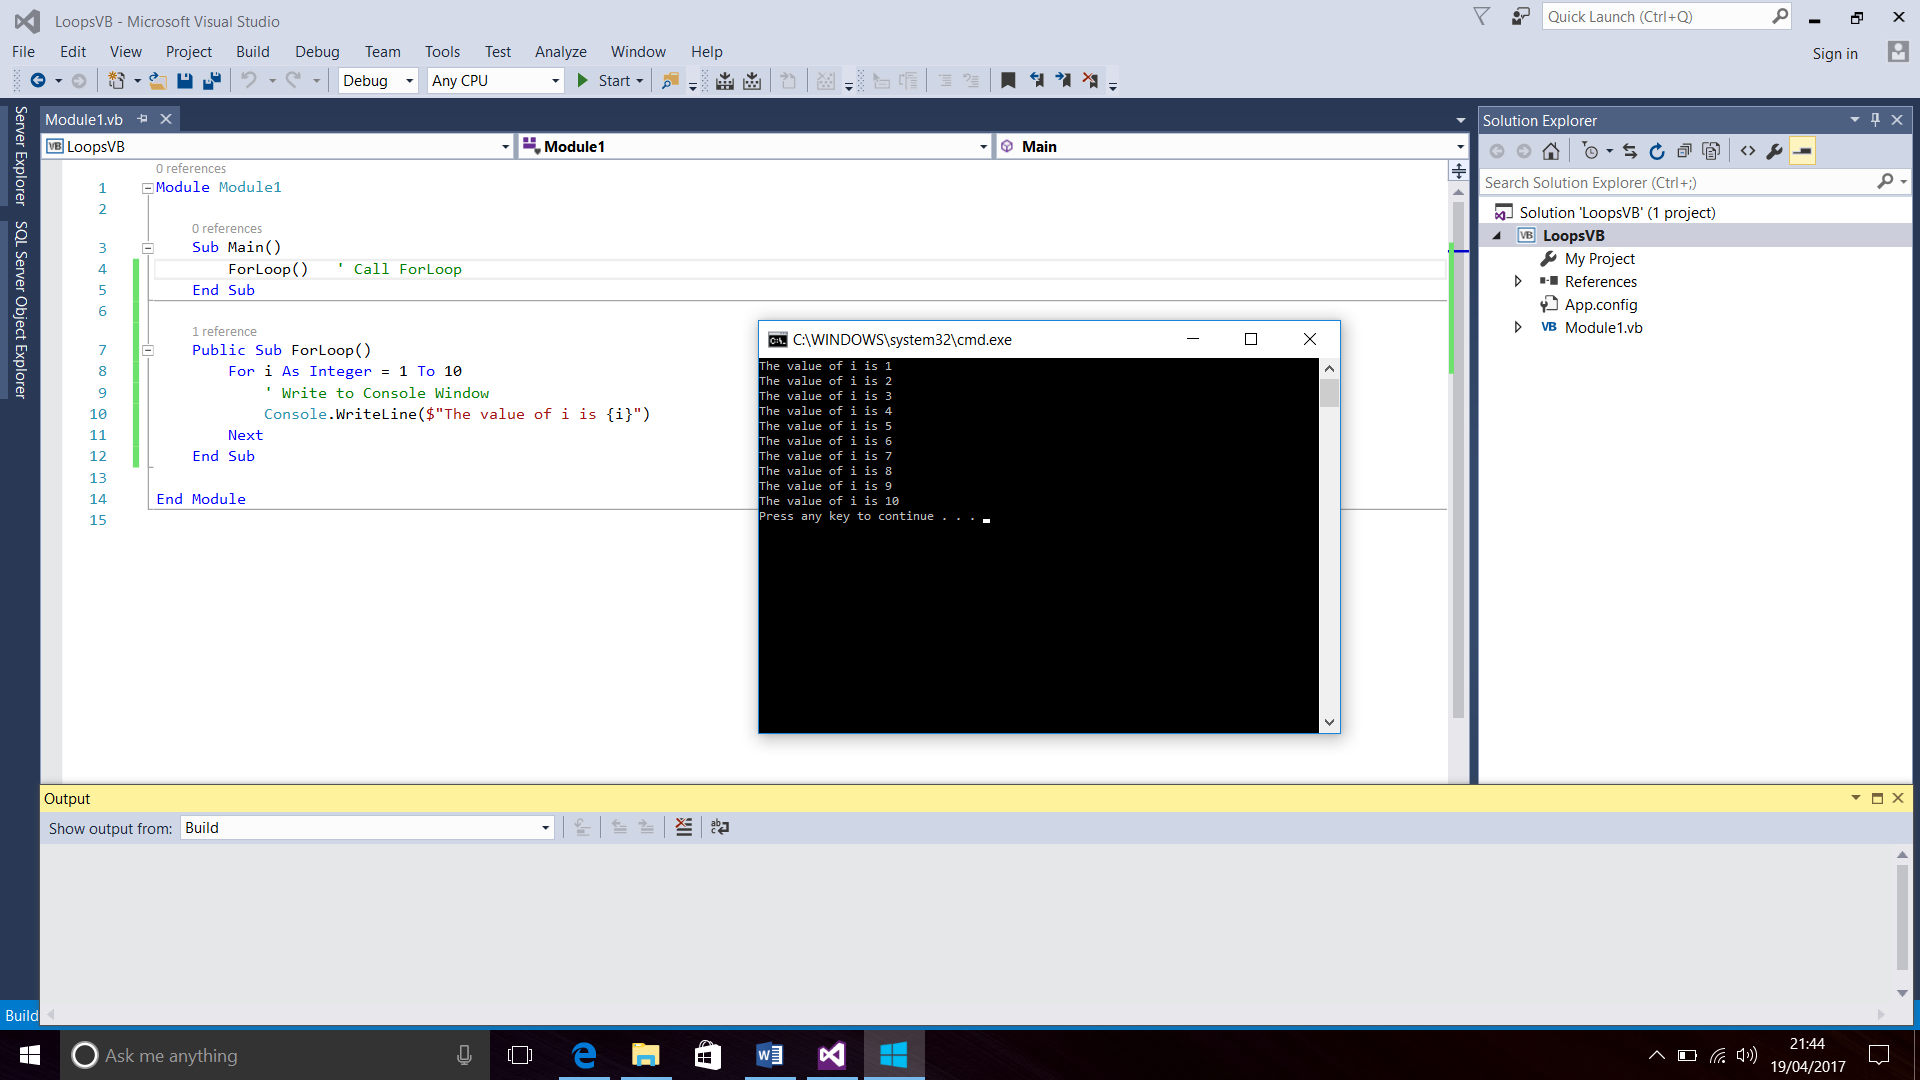 Screenshot of Visual Basic Code and the Console Window for